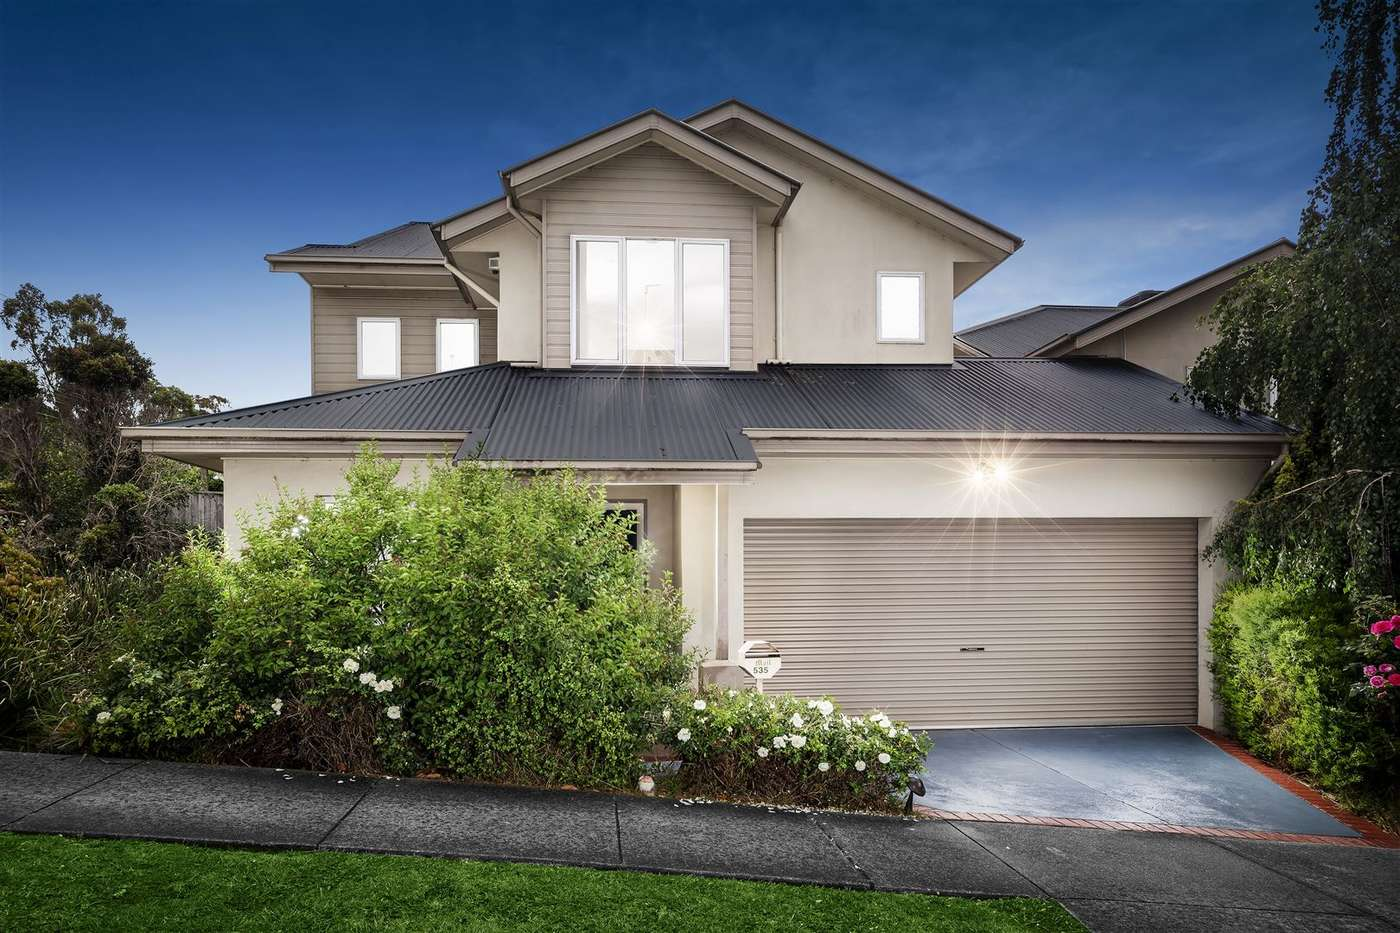 Main view of Homely house listing, 535 Springvale Rd, Vermont South, VIC 3133